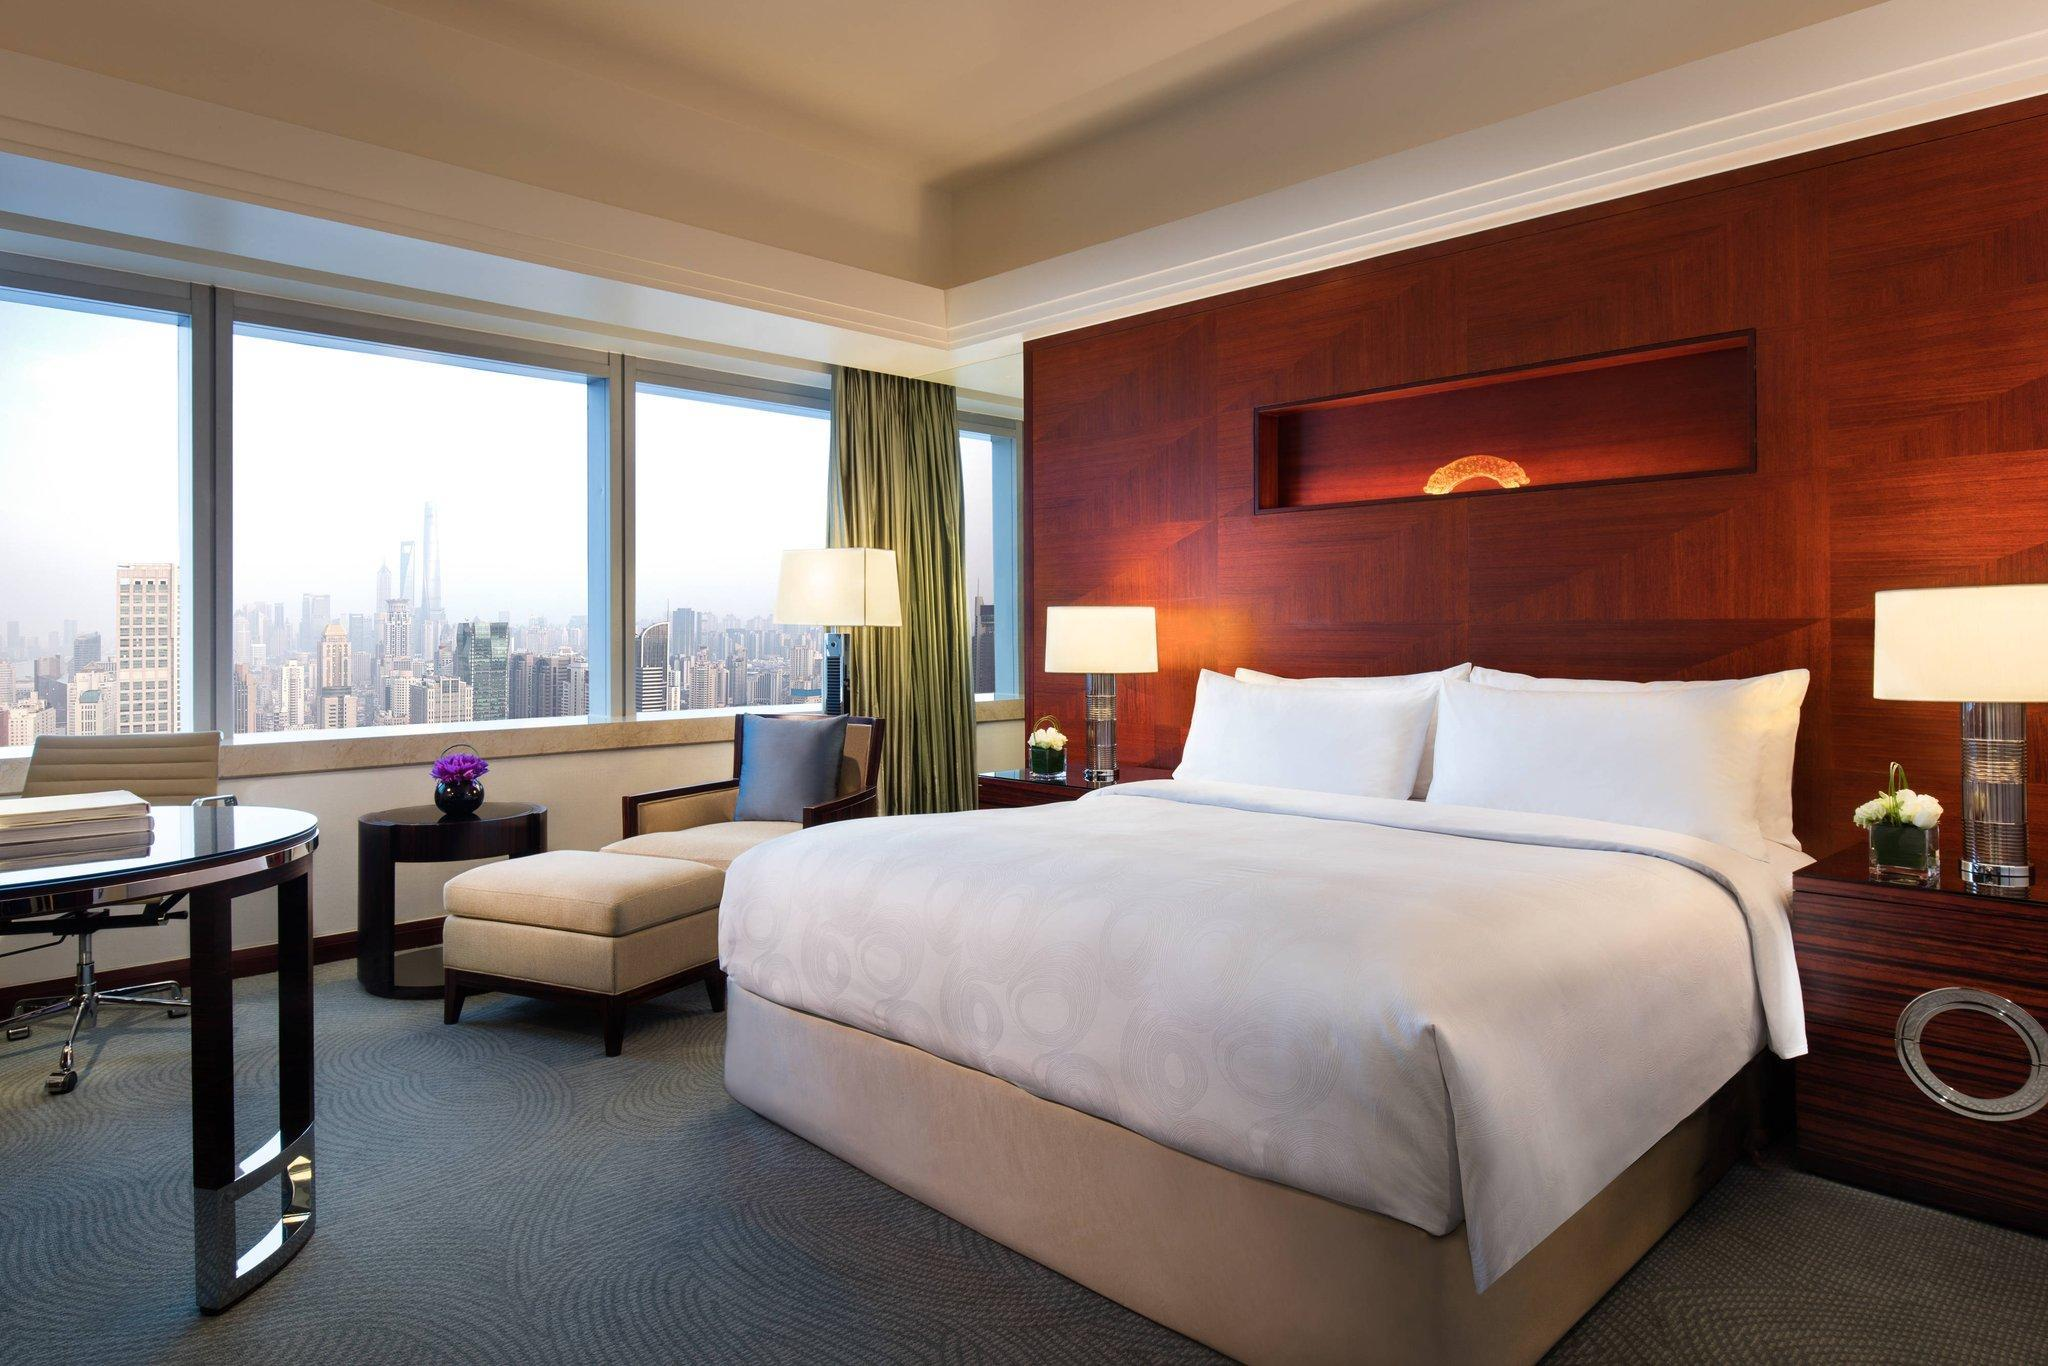 Deluxe Room, Guest room, 1 King, City view, Tomorrow Square